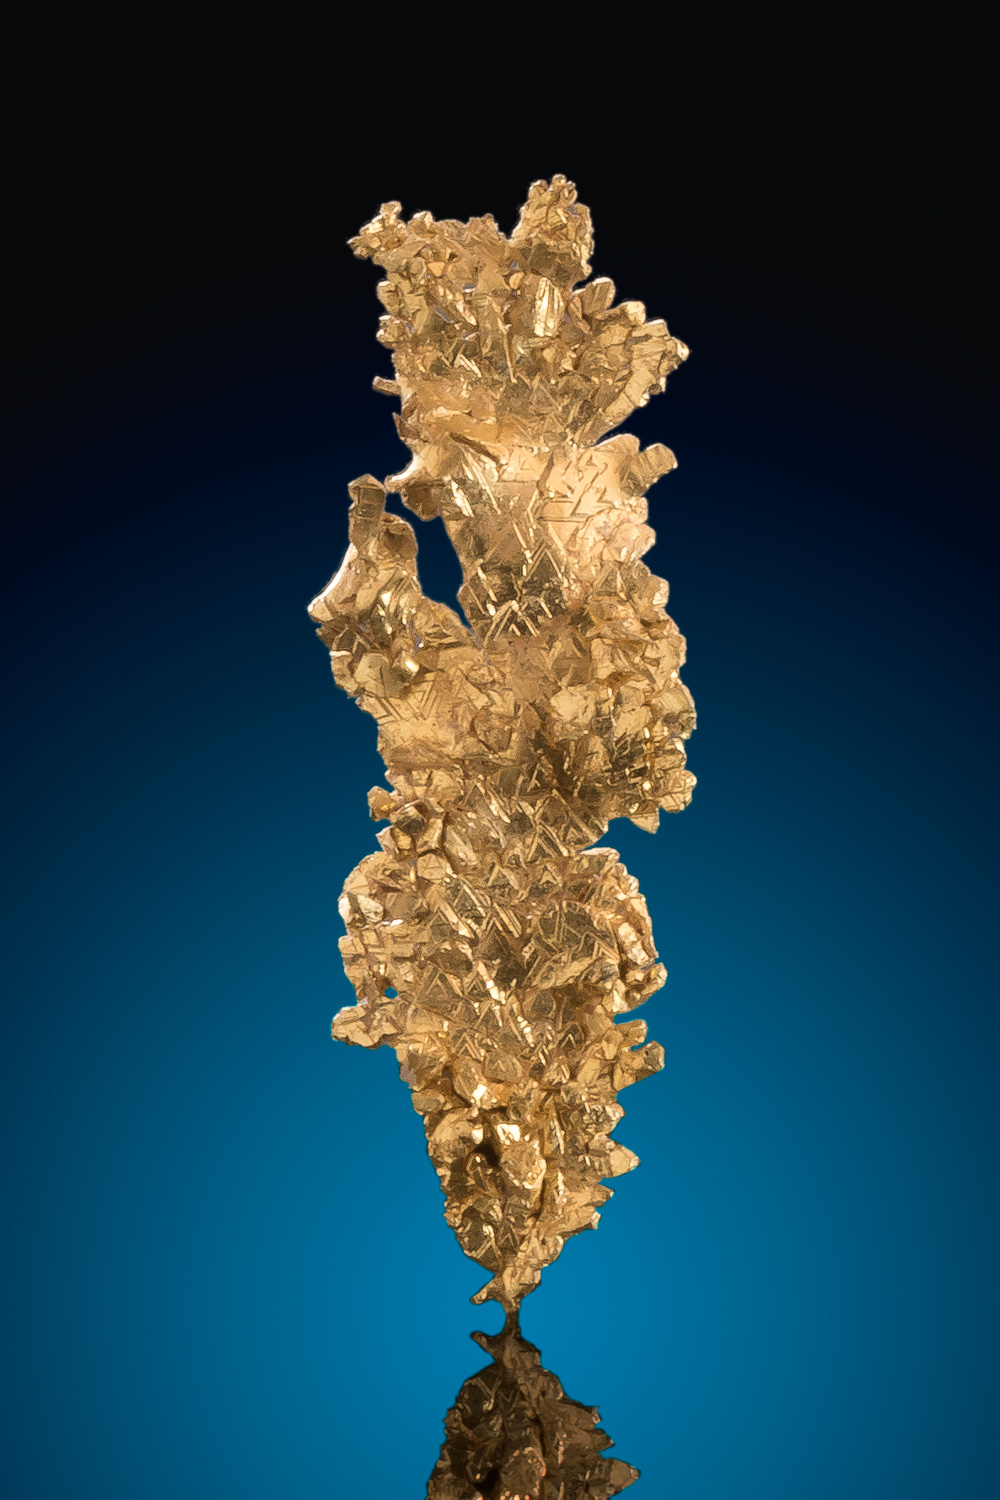 Beautiful Crystalized Leaf Gold Nugget Specimen - Round Mountain